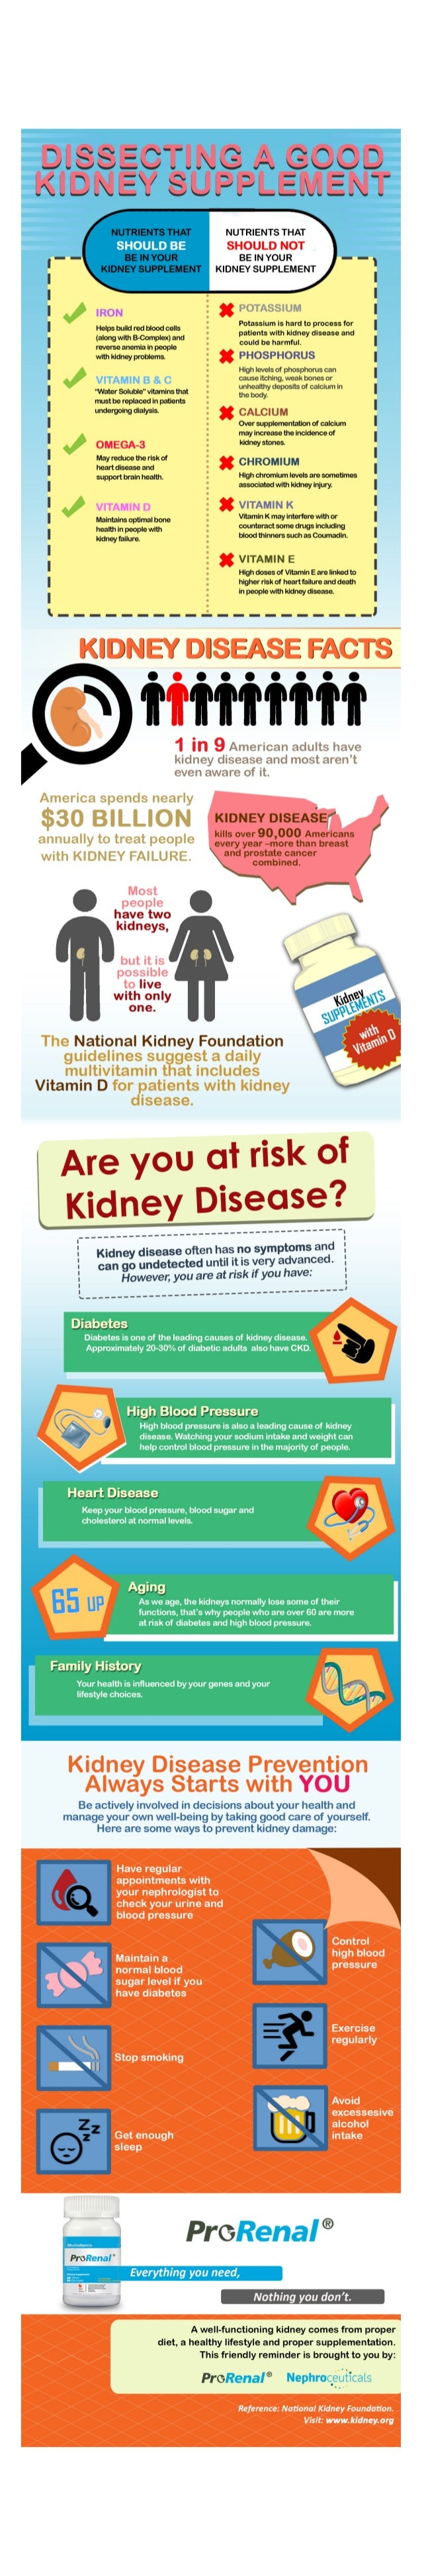 DISSECTING A GOOD  KIDNEY SUPPLEMENT  NUTRIENTS THAT                                      SHOULD BE      BE IN YOUR KIDNEY...